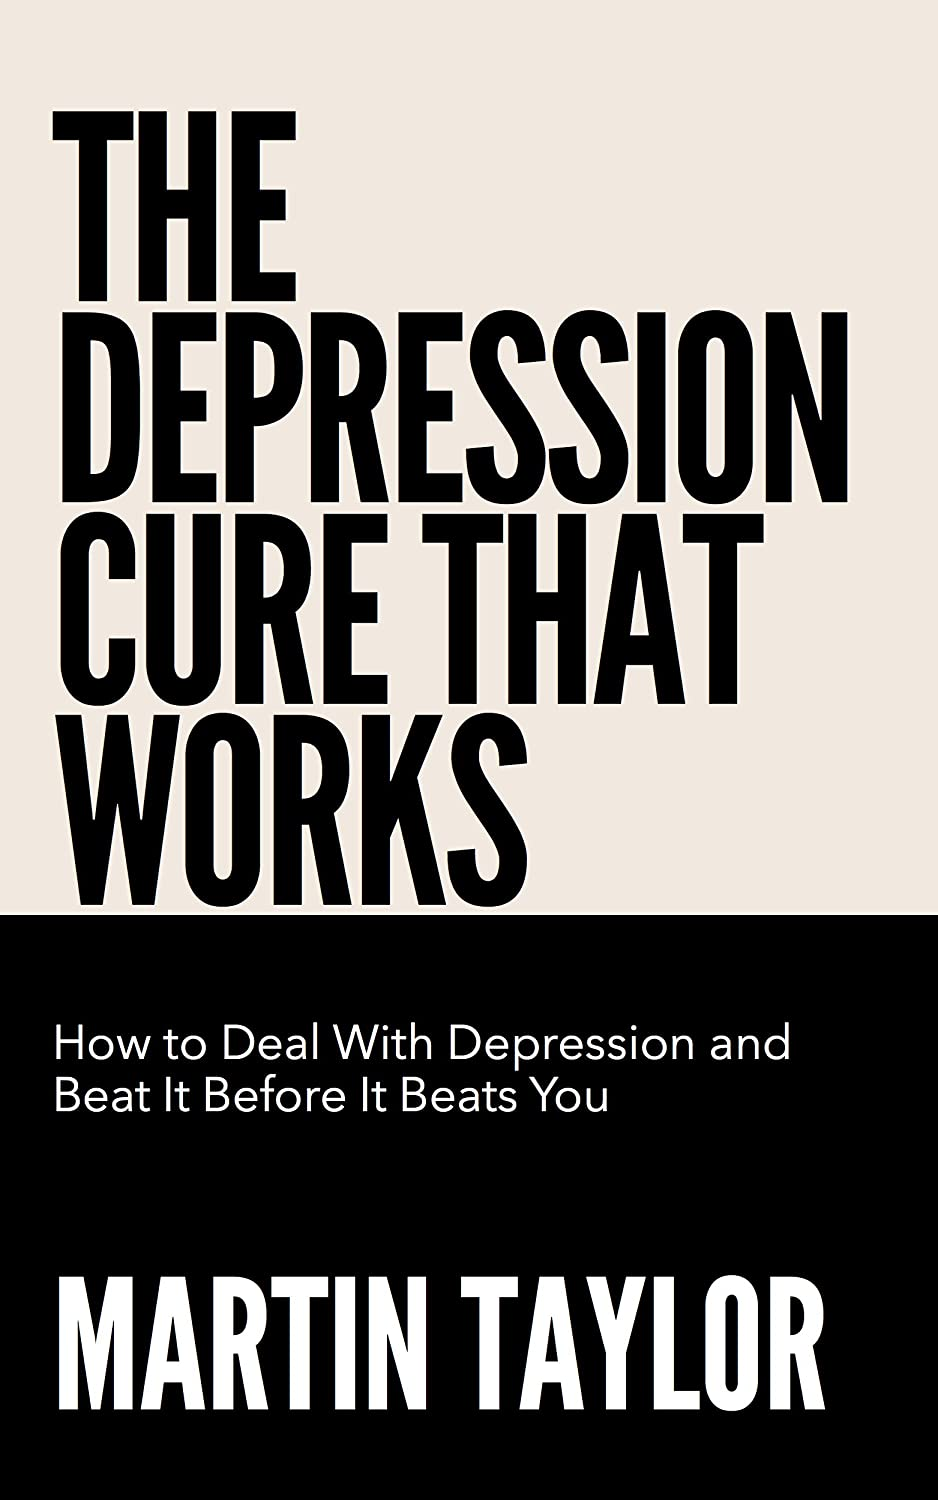 The Depression Cure That Works: How To Deal With Depression and Beat It Before It Beats You by Martin Taylor